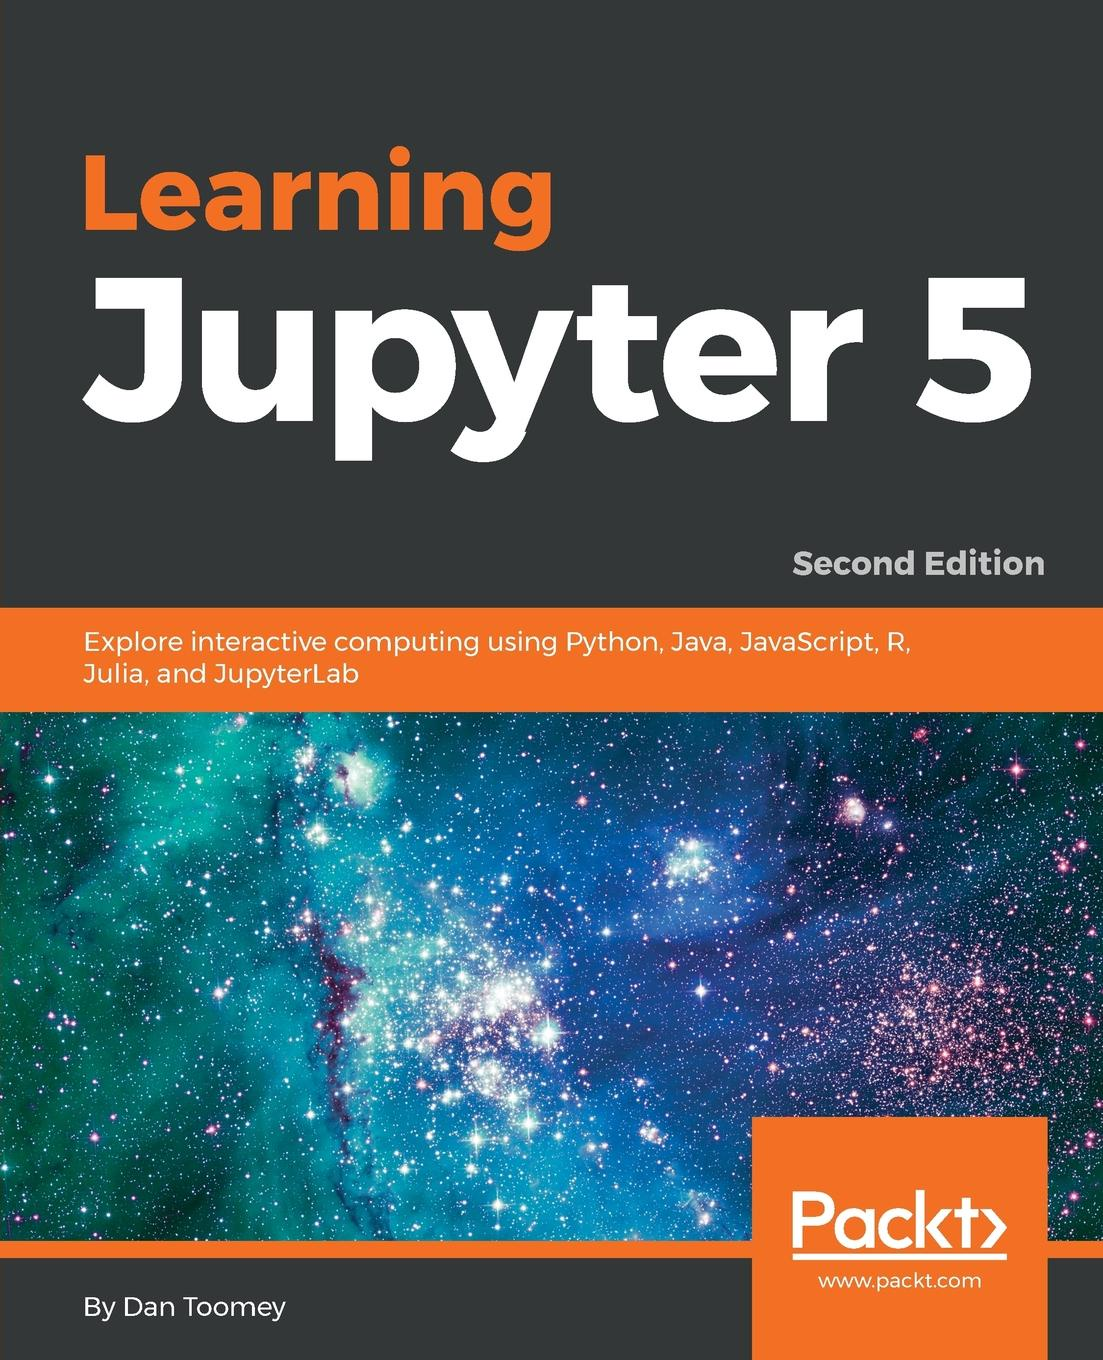 Dan Toomey Learning Jupyter 5, Second Edition